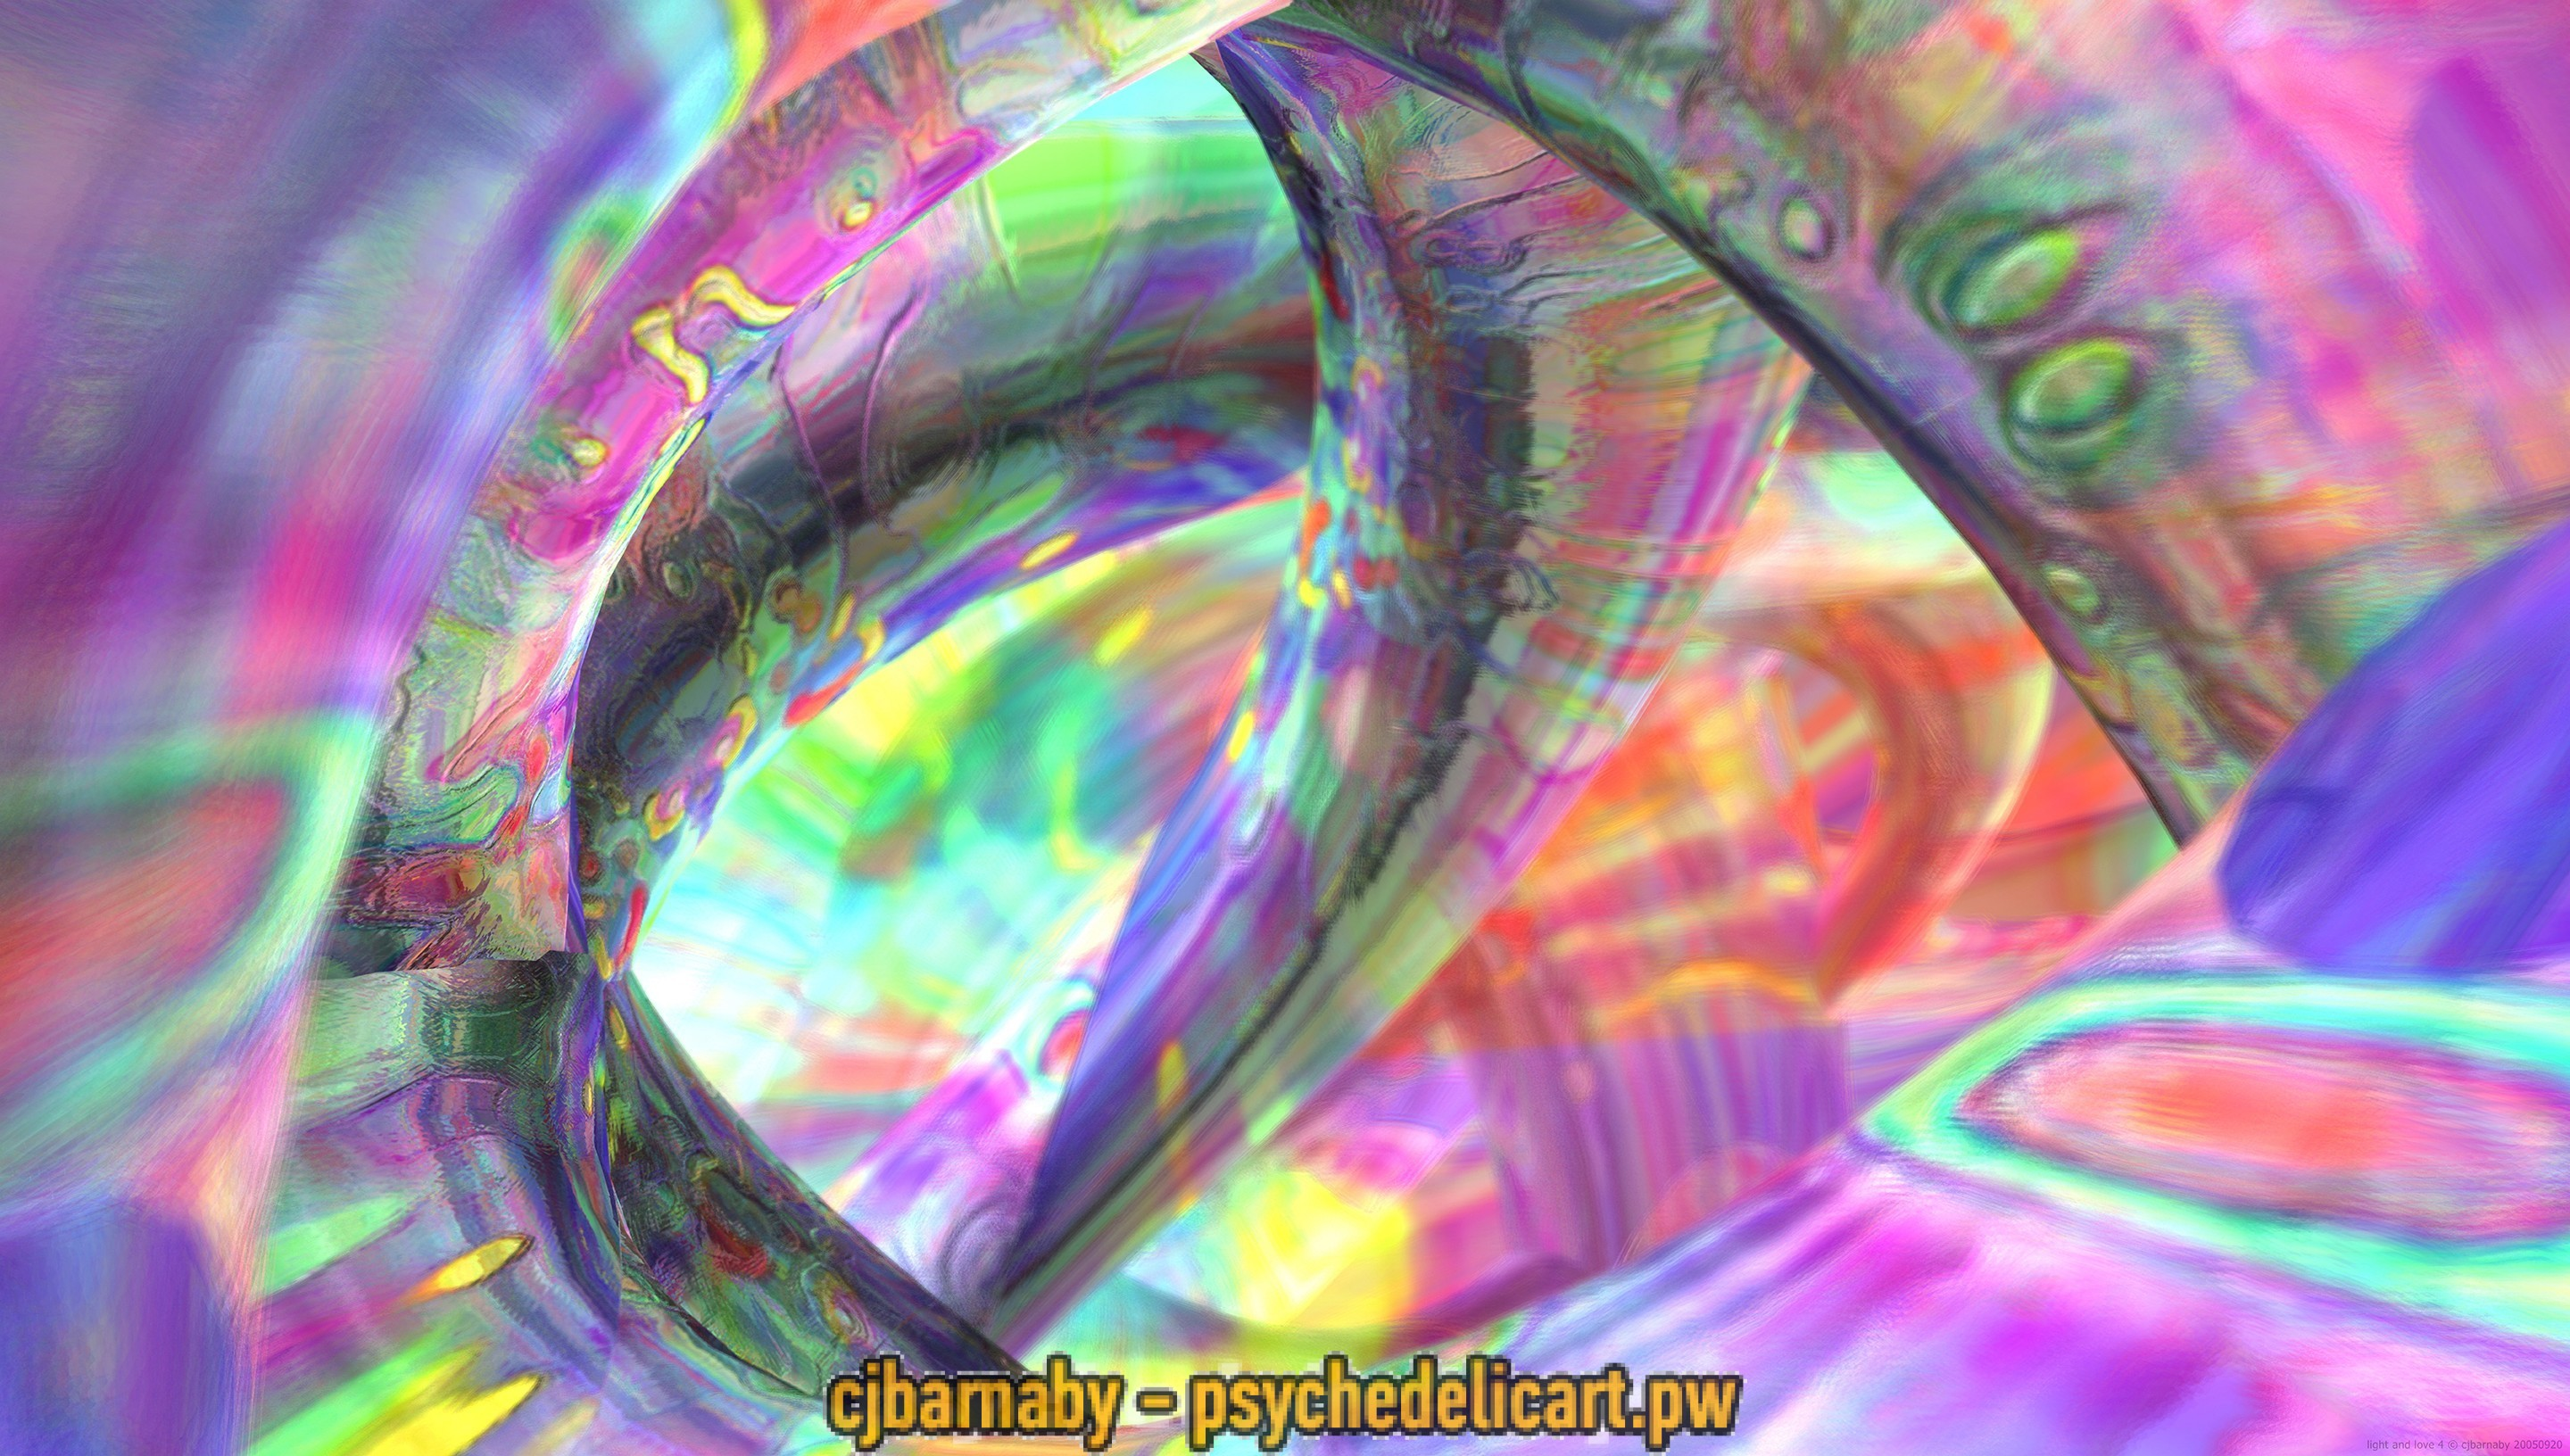 psychedelic art http://psychedelicart.pw/wp-content/uploads/Light-And-Love-4.jpg